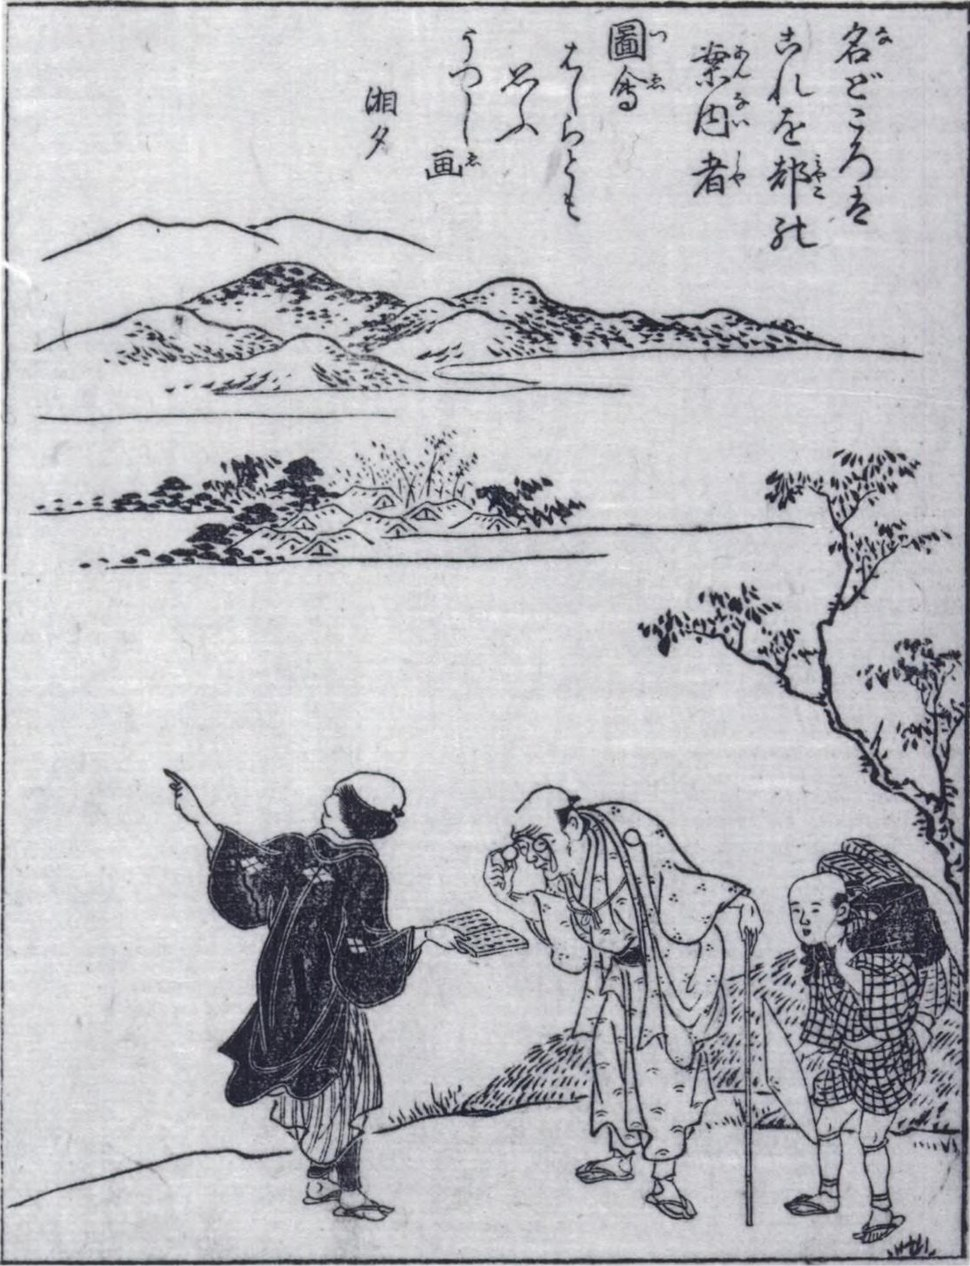 """A Tour Guide to the Famous Places of the Capital"" from Akizato Rito's Miyako meisho zue (1787)"